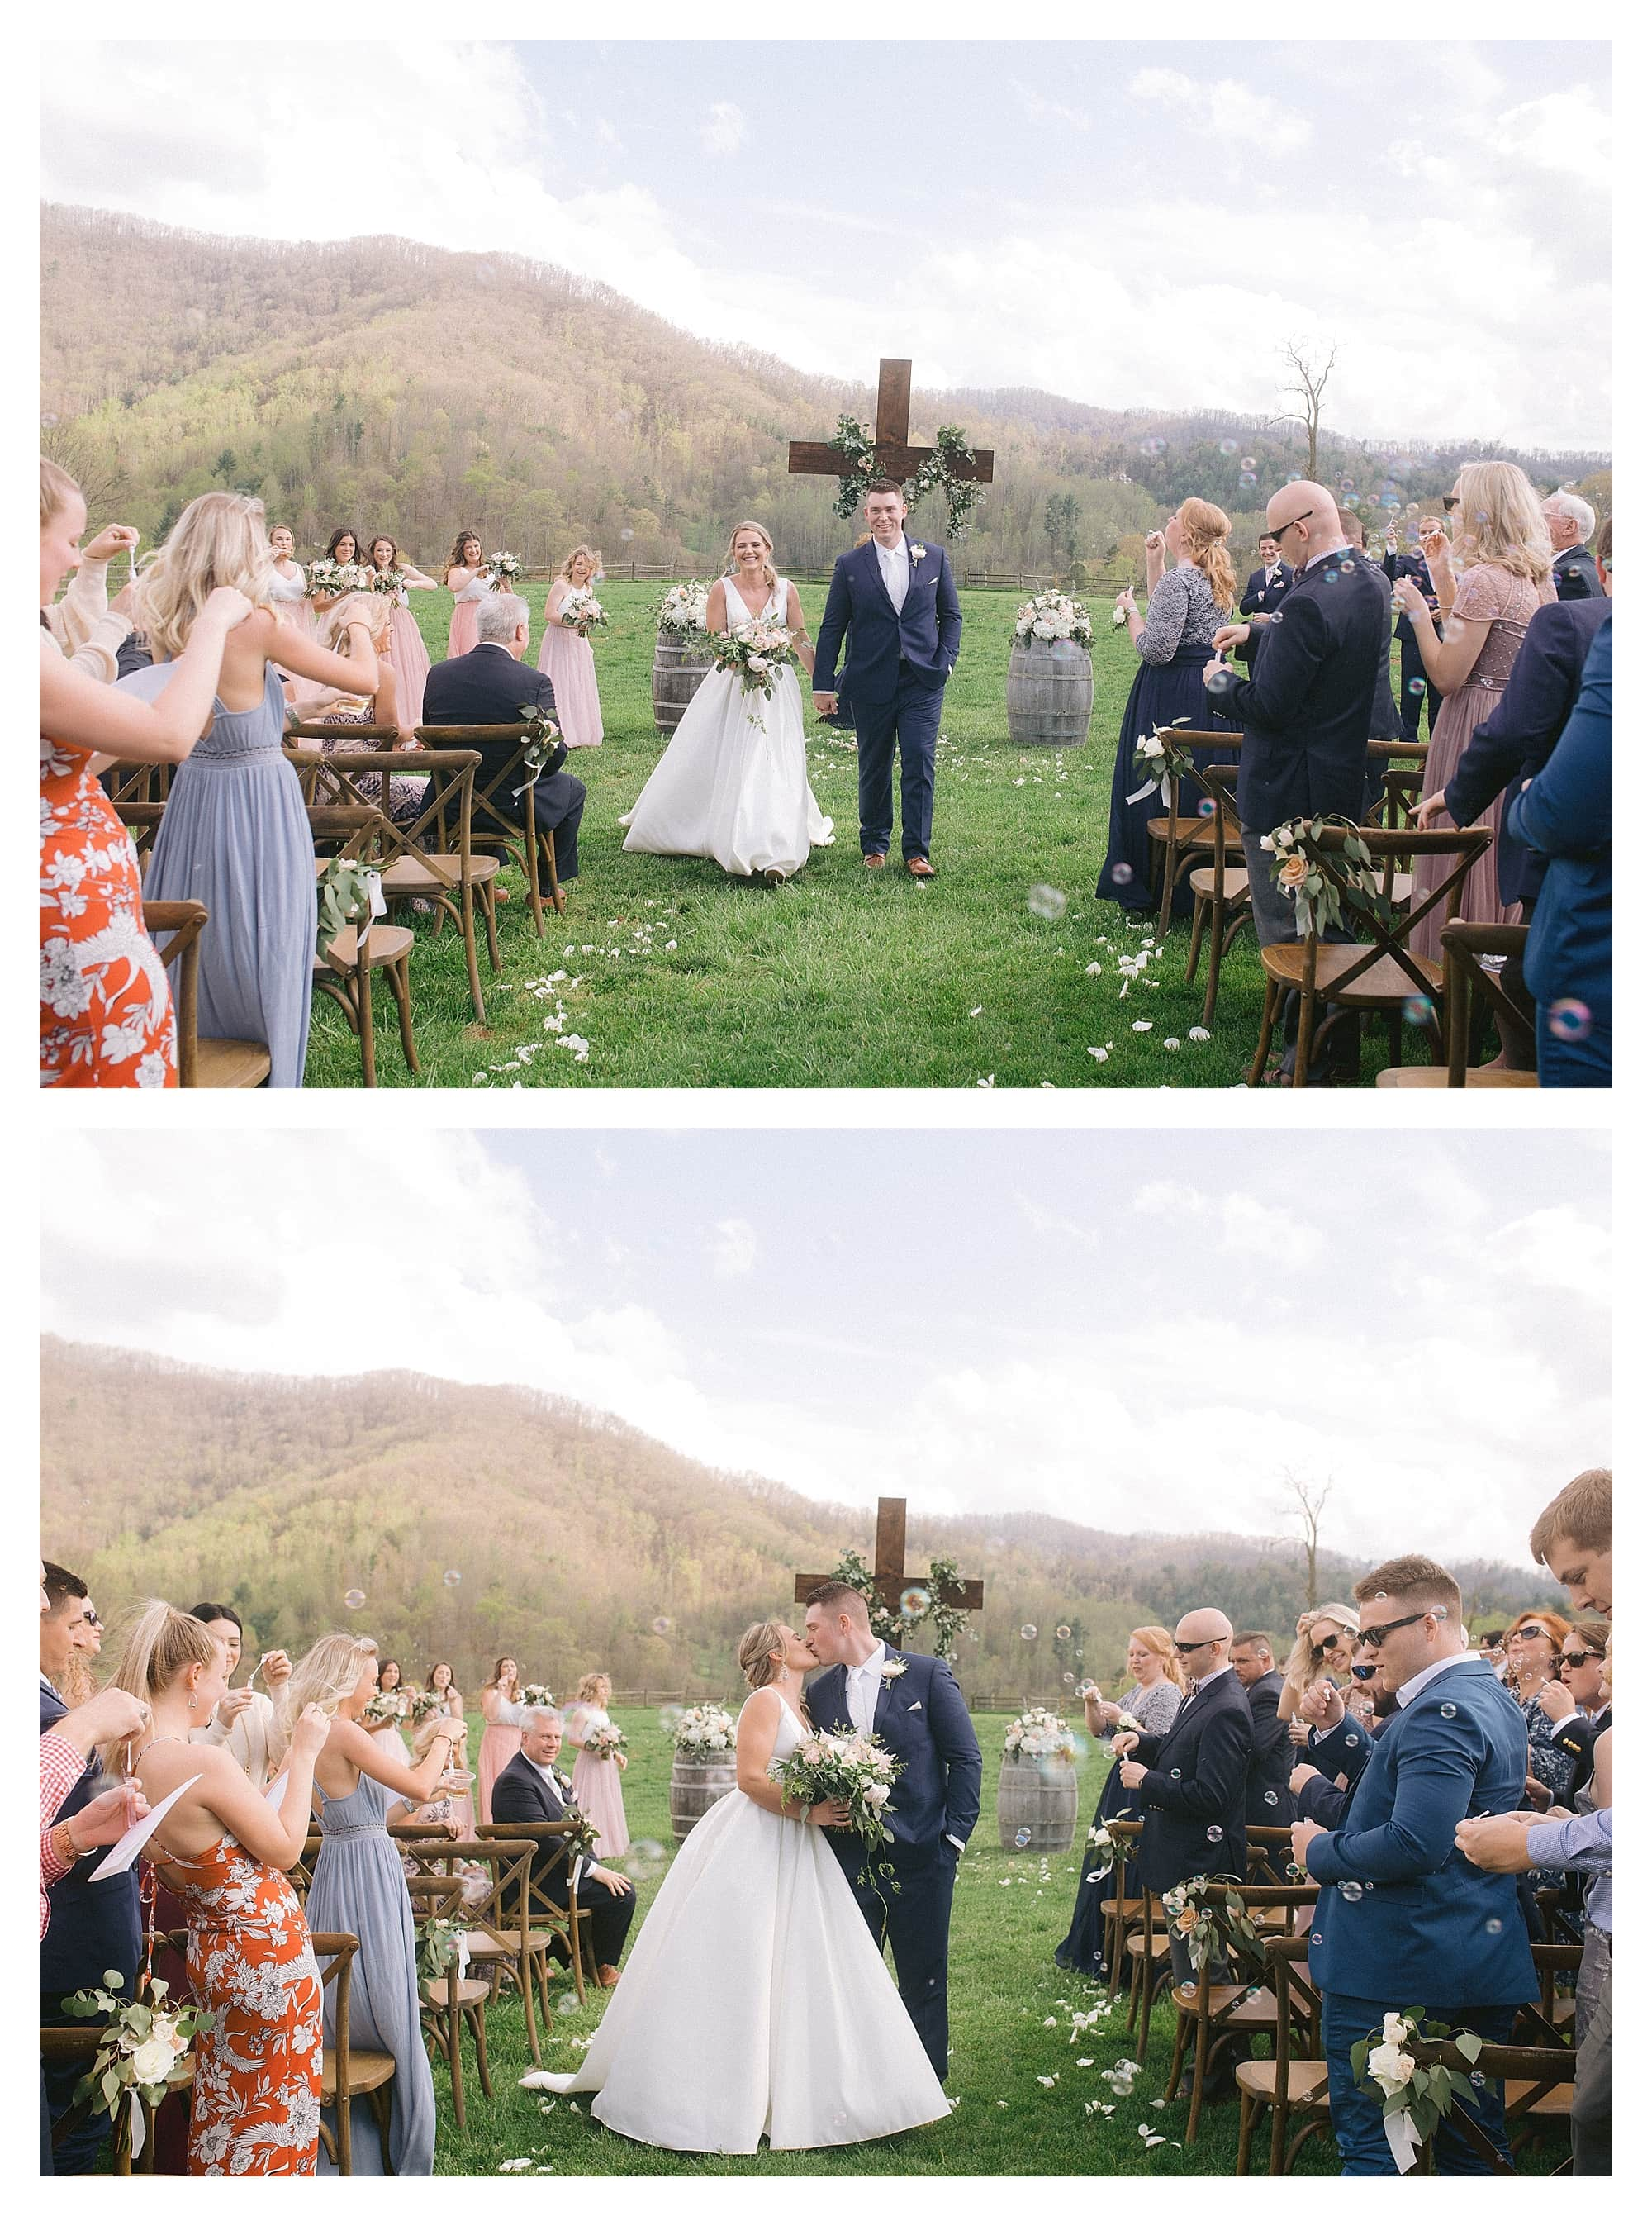 Wedding ceremony outdoors in grassy field among mountains - bride and groom walking down the aisle together post ceremony